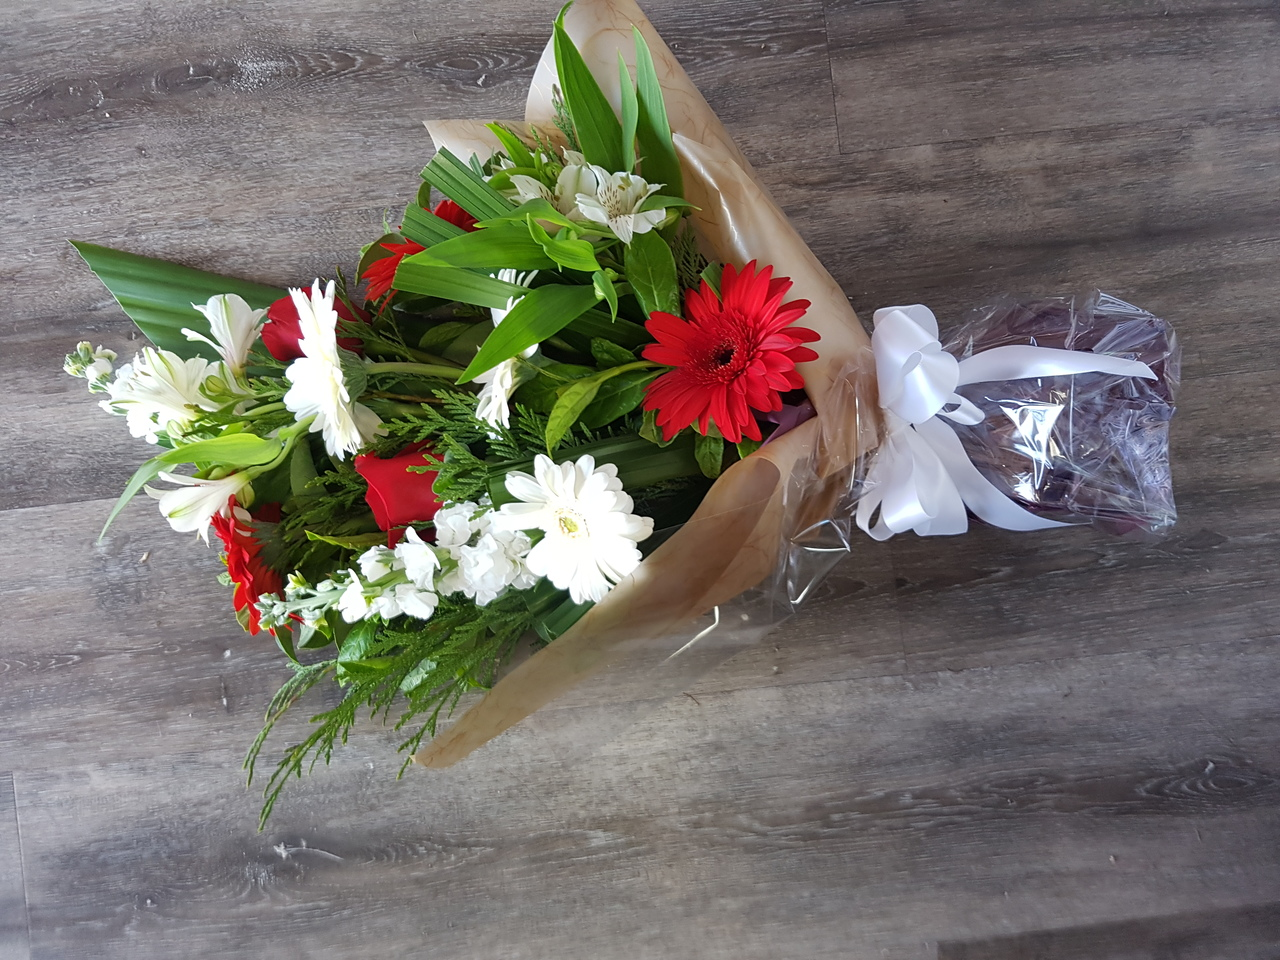 RED AND WHITE FUNERAL SHEAF INCLUDING GERBERAS, ALSTROEMERIA, ROSES AND SNAP DRAGONS.